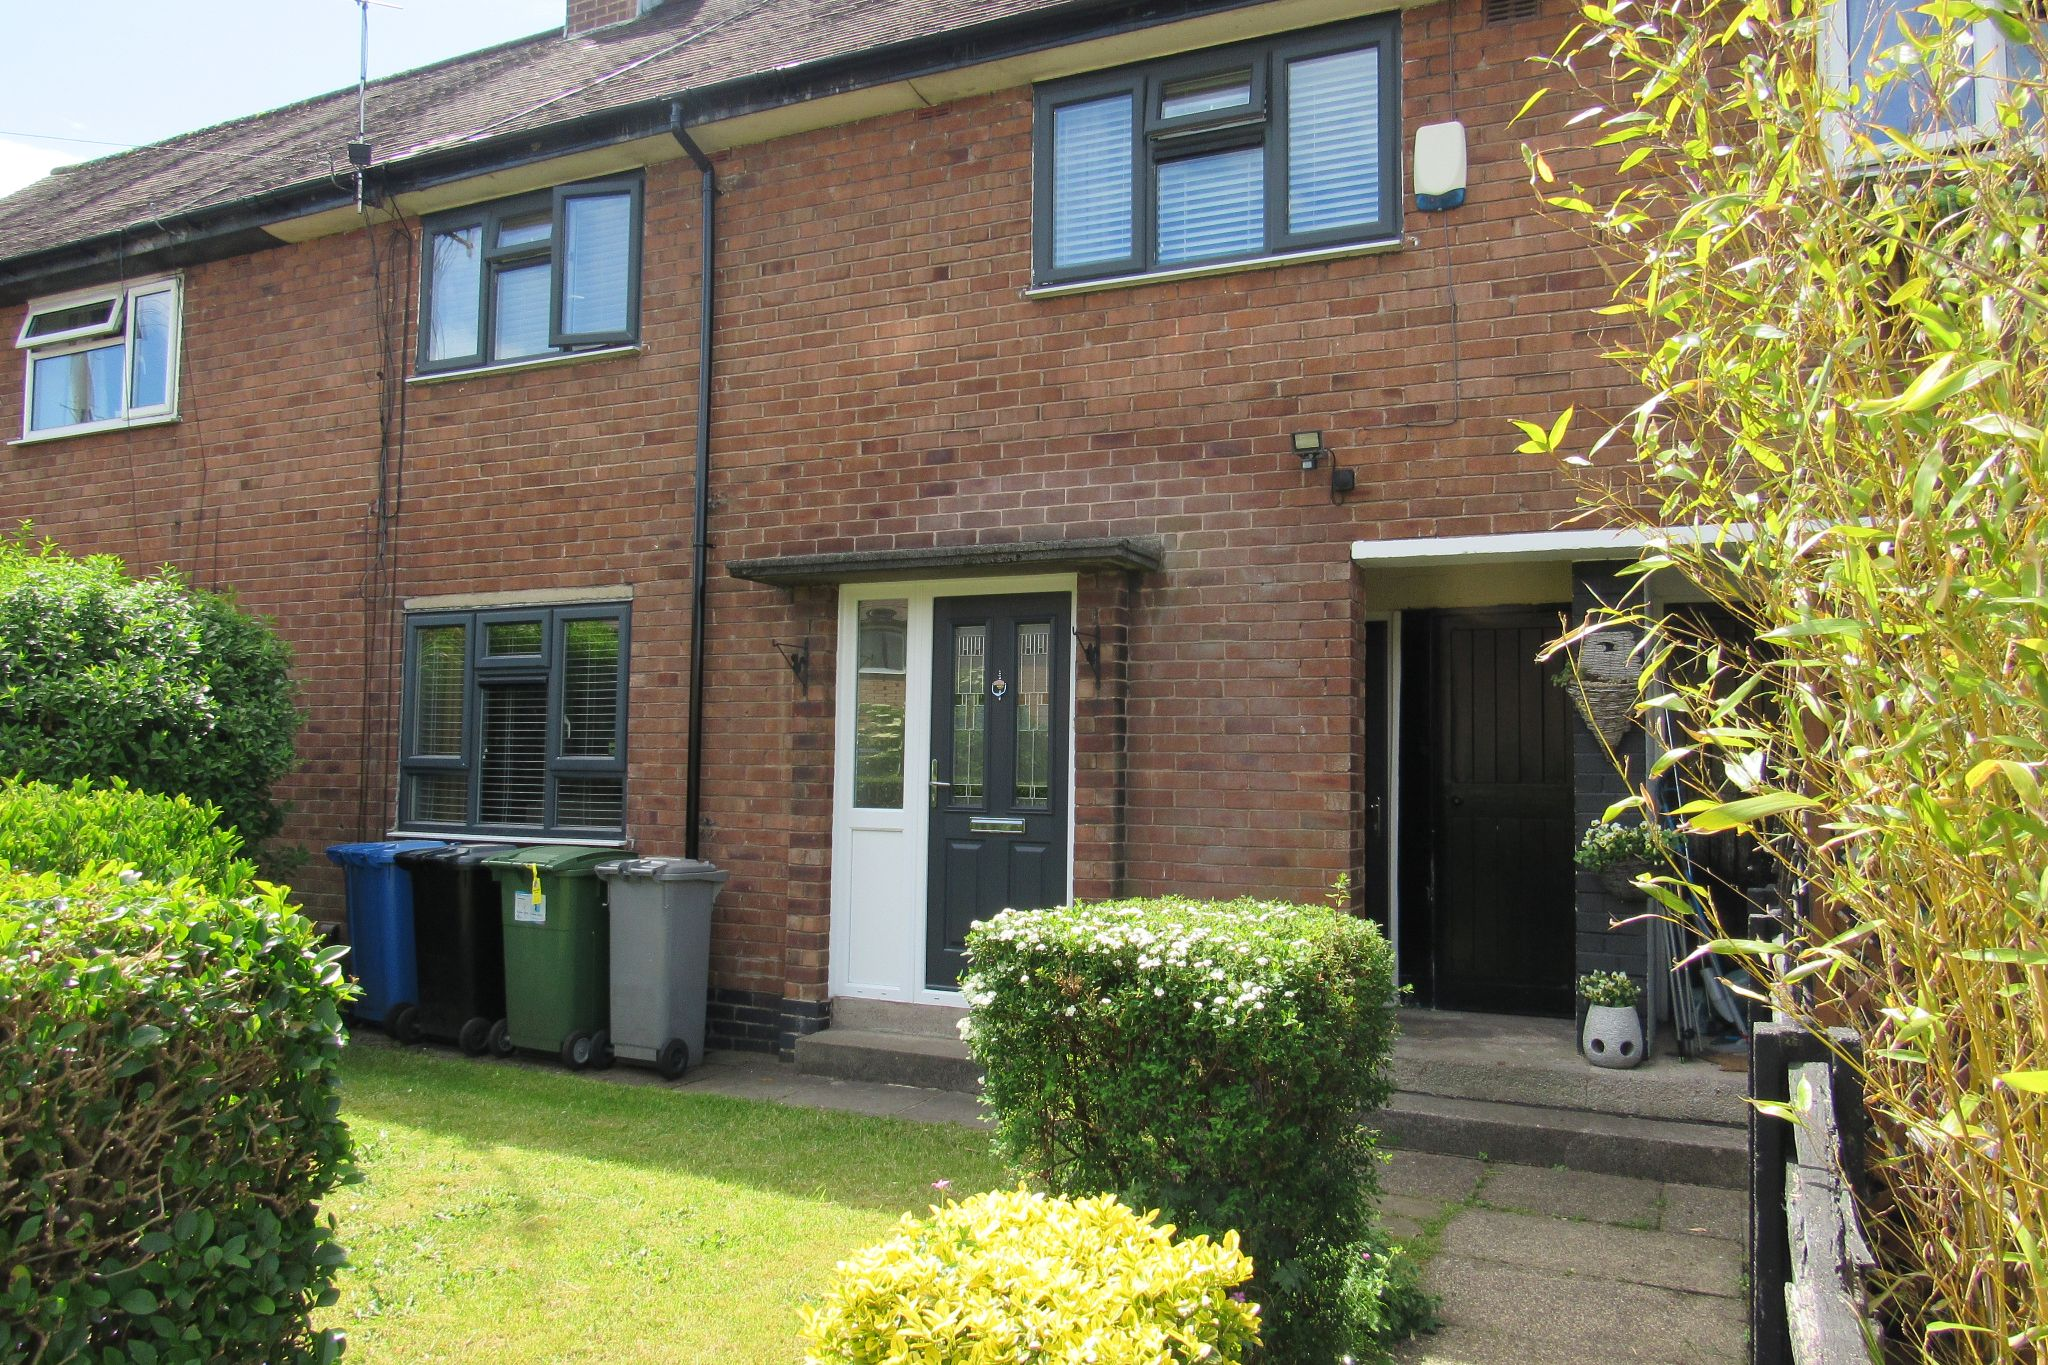 3 bedroom mid terraced house SSTC in Altrincham - Photograph 13.